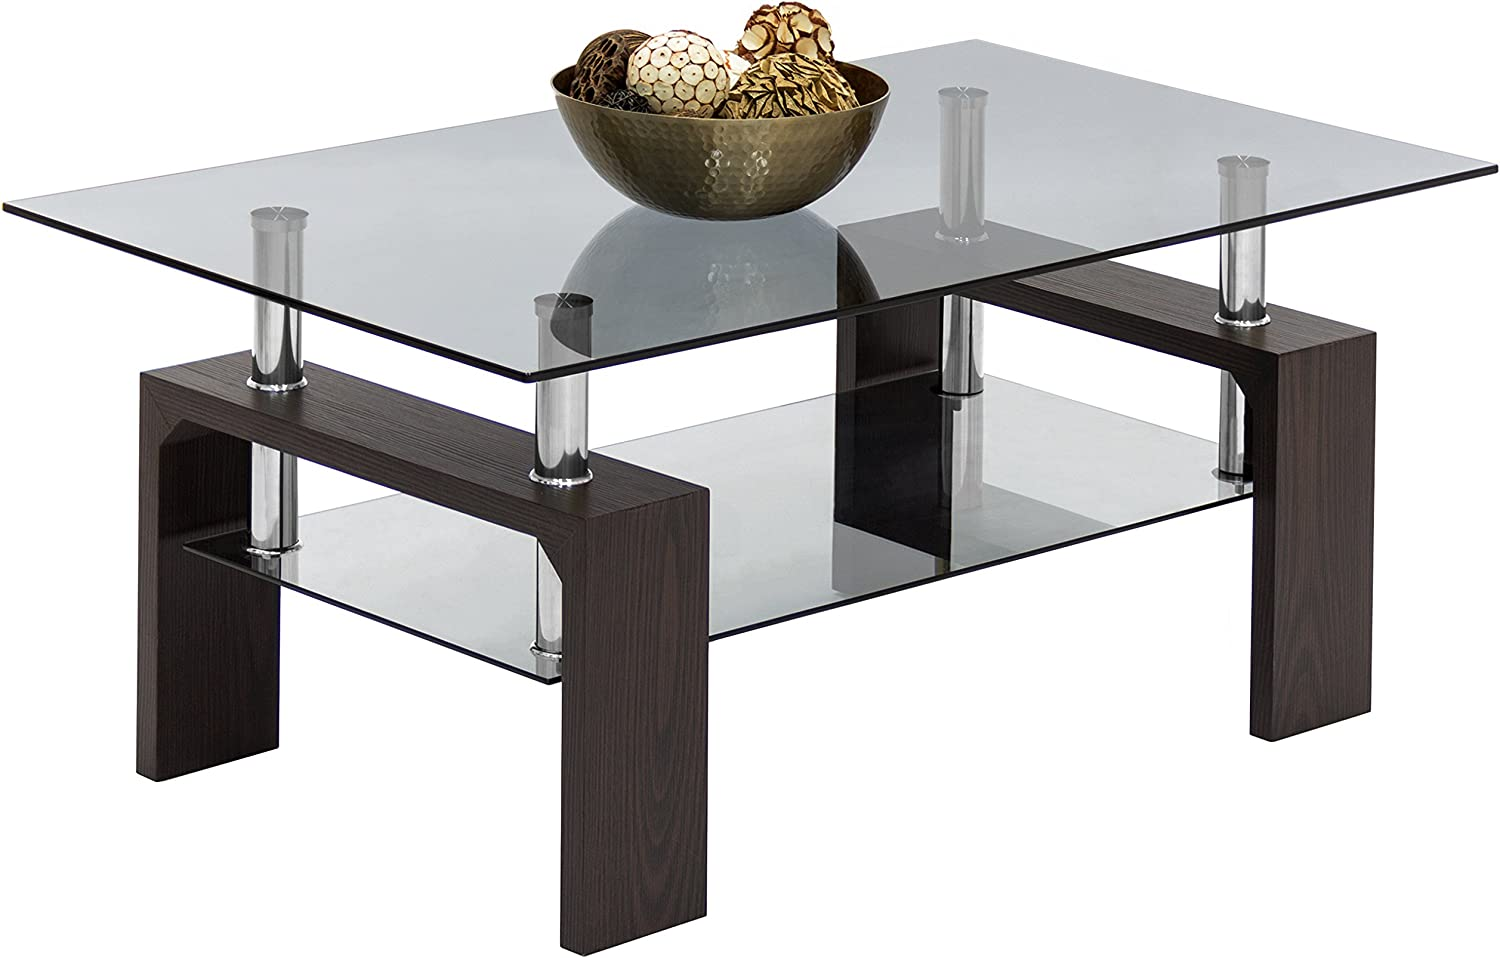 Amazon Com Best Choice Products Home Furniture Wood Glass Top Coffee Table Dark Espresso Brown Kitchen Dining [ 961 x 1500 Pixel ]